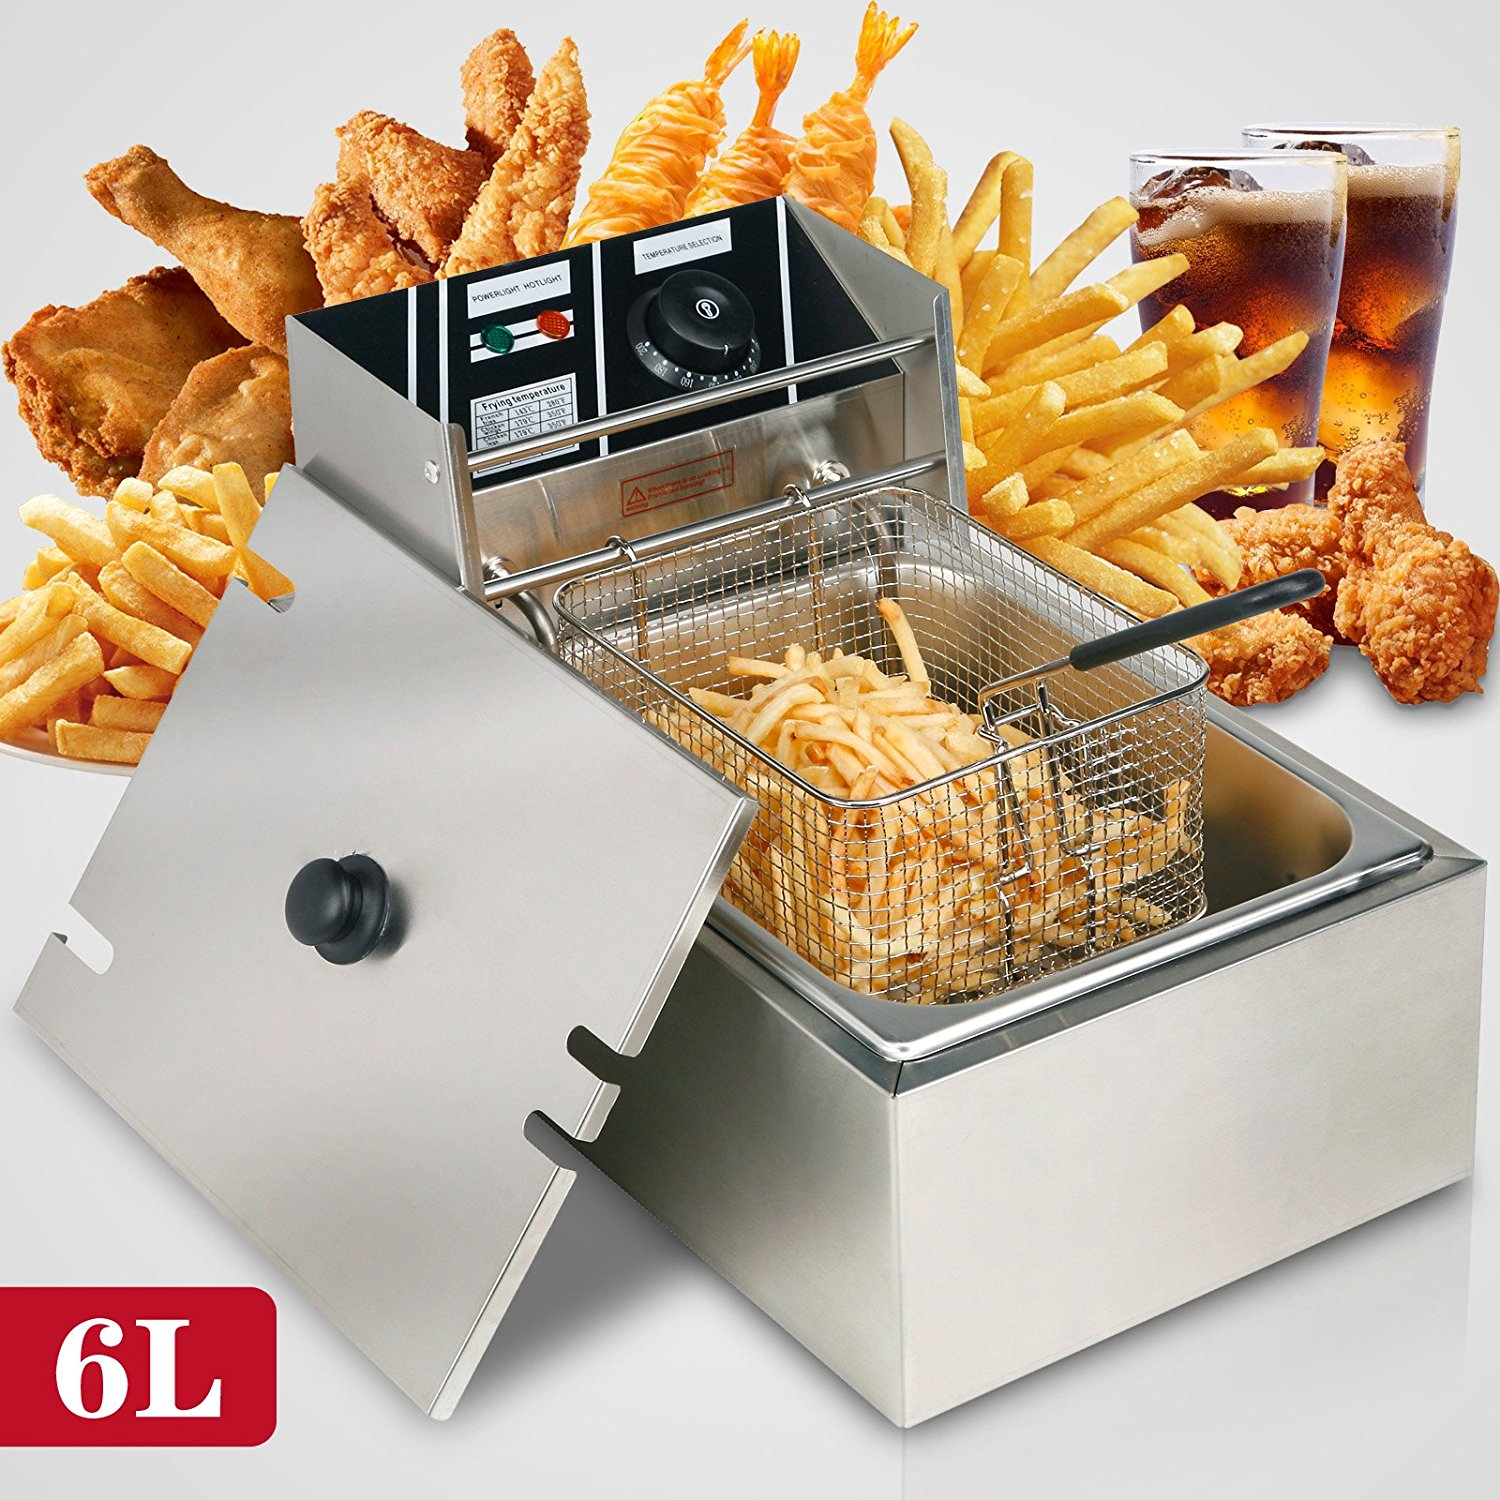 Bestcooker 6L Electric Deep Fryer Commercial Tabletop Res...